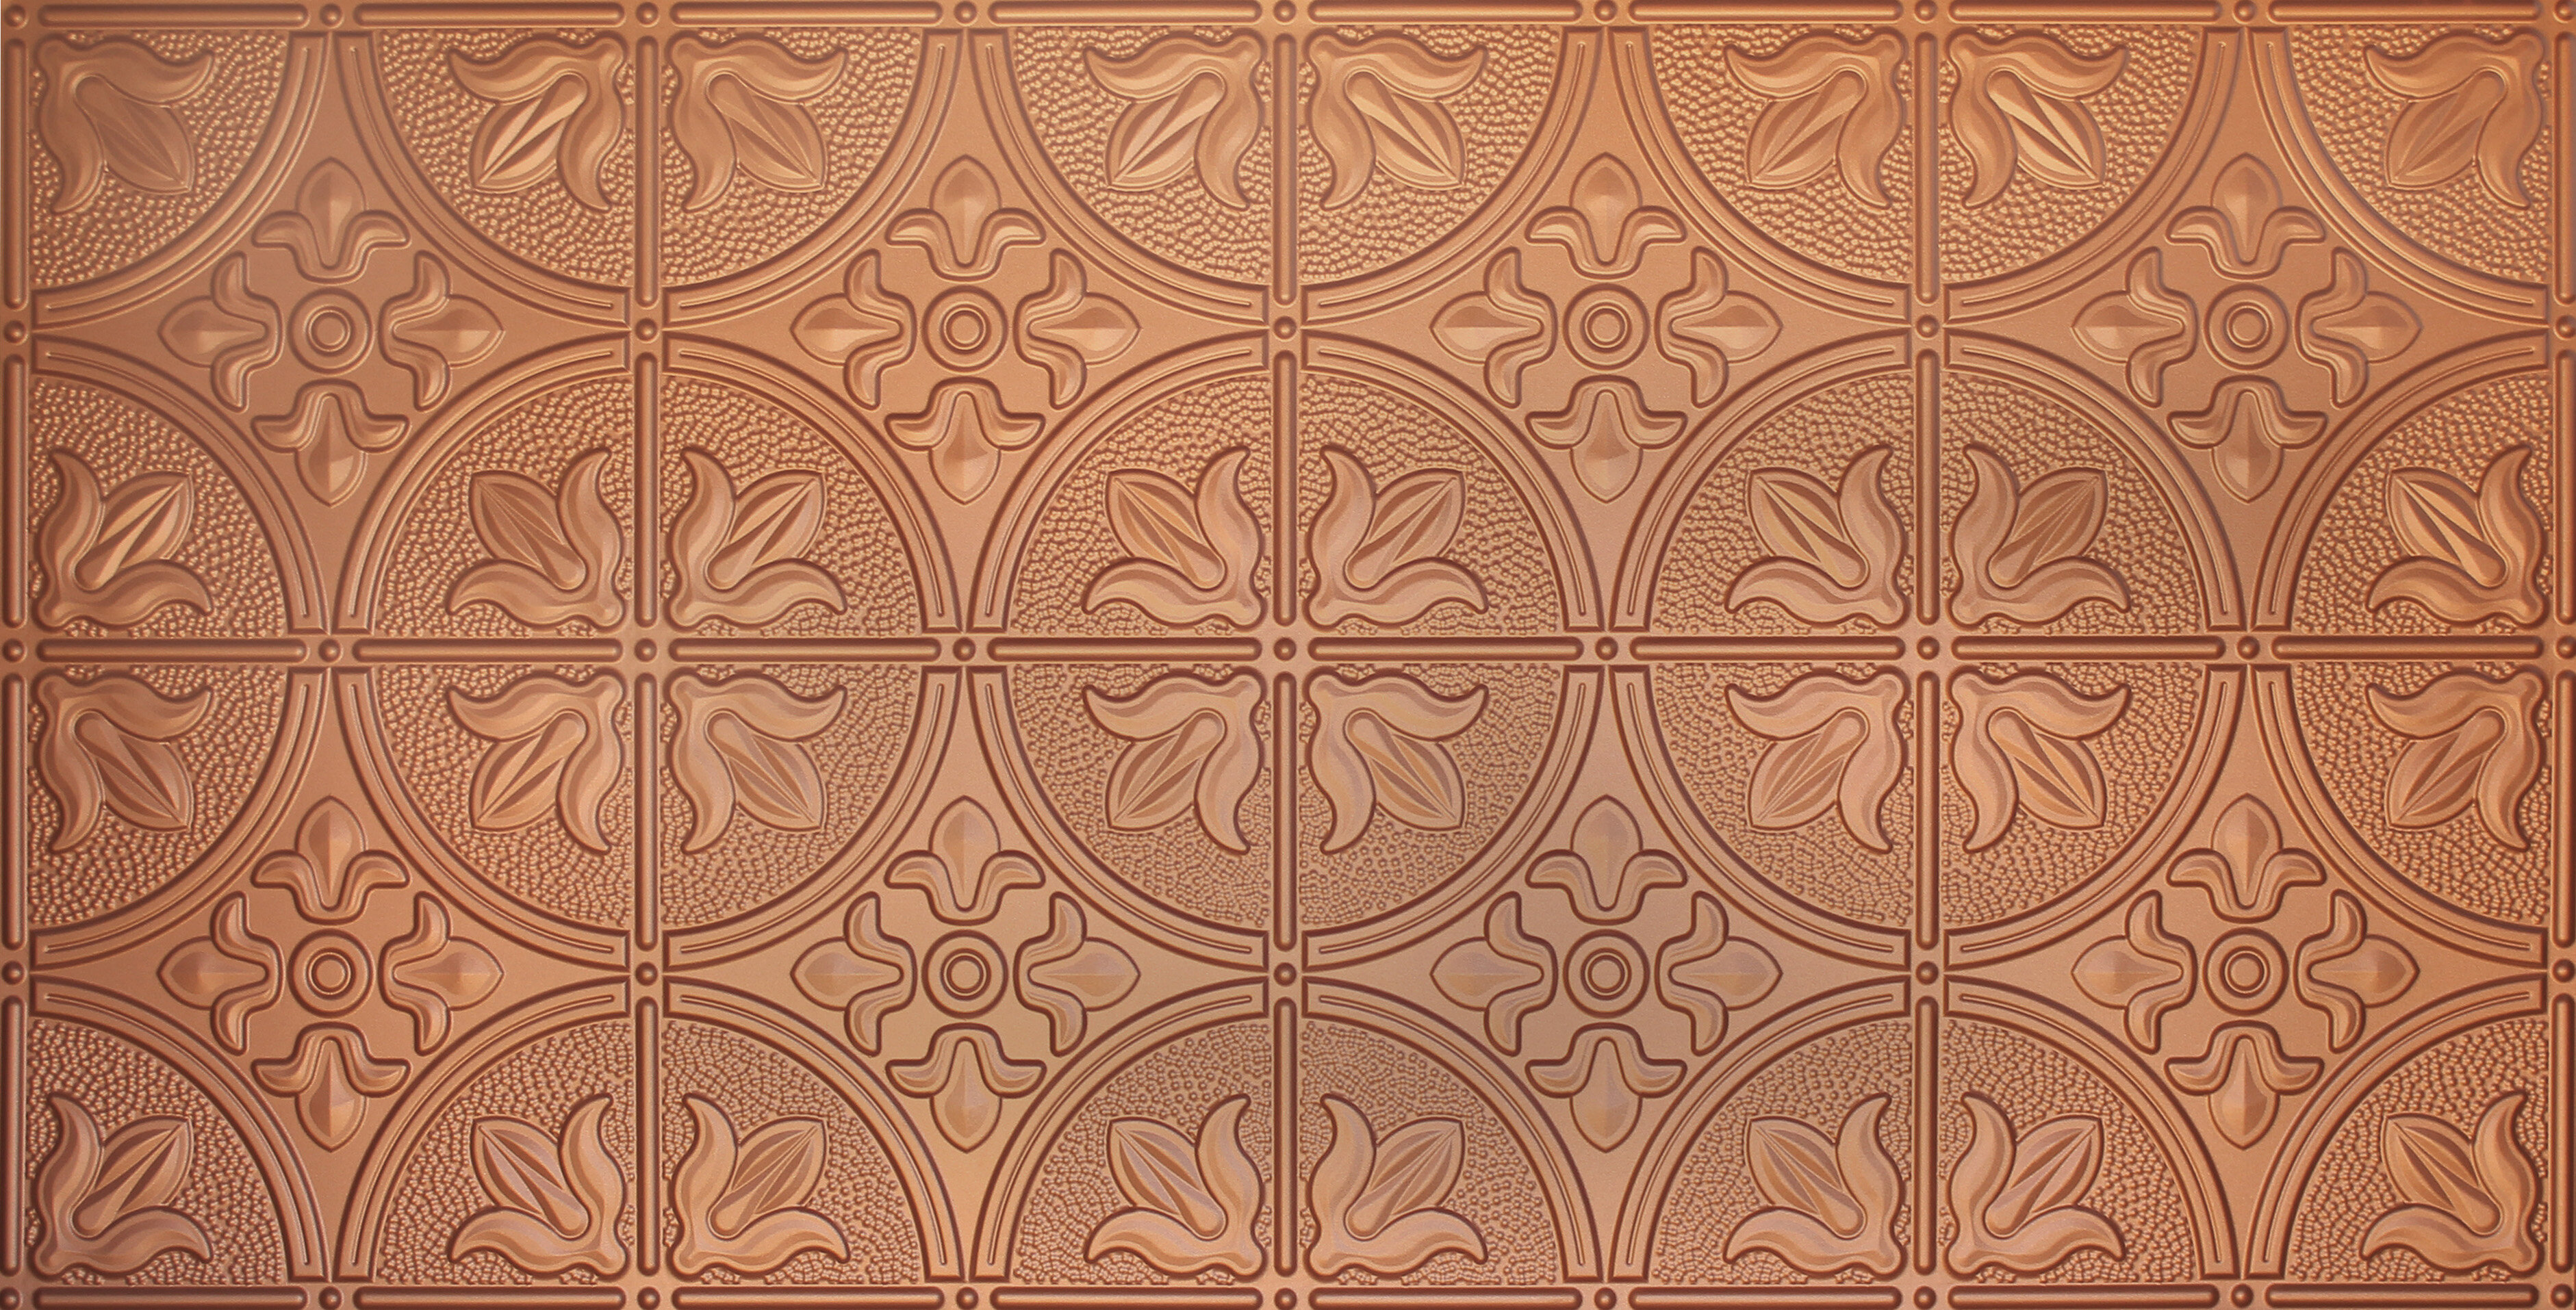 tile fauxtintiles authentic com tin pressed tiles ceiling